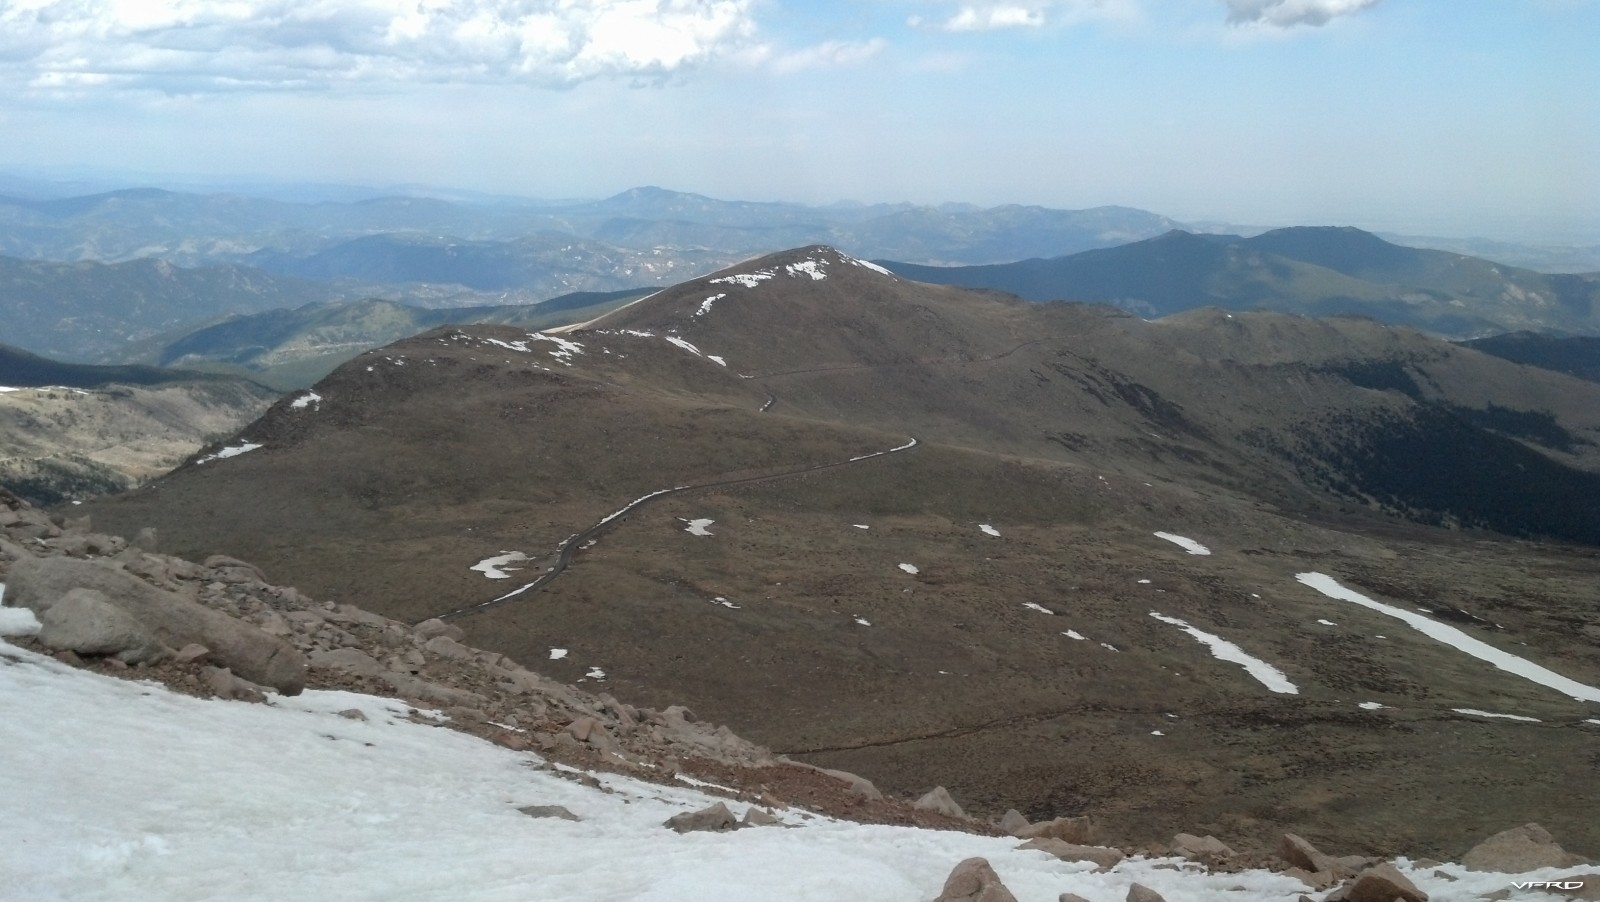 The road up Mt Evans